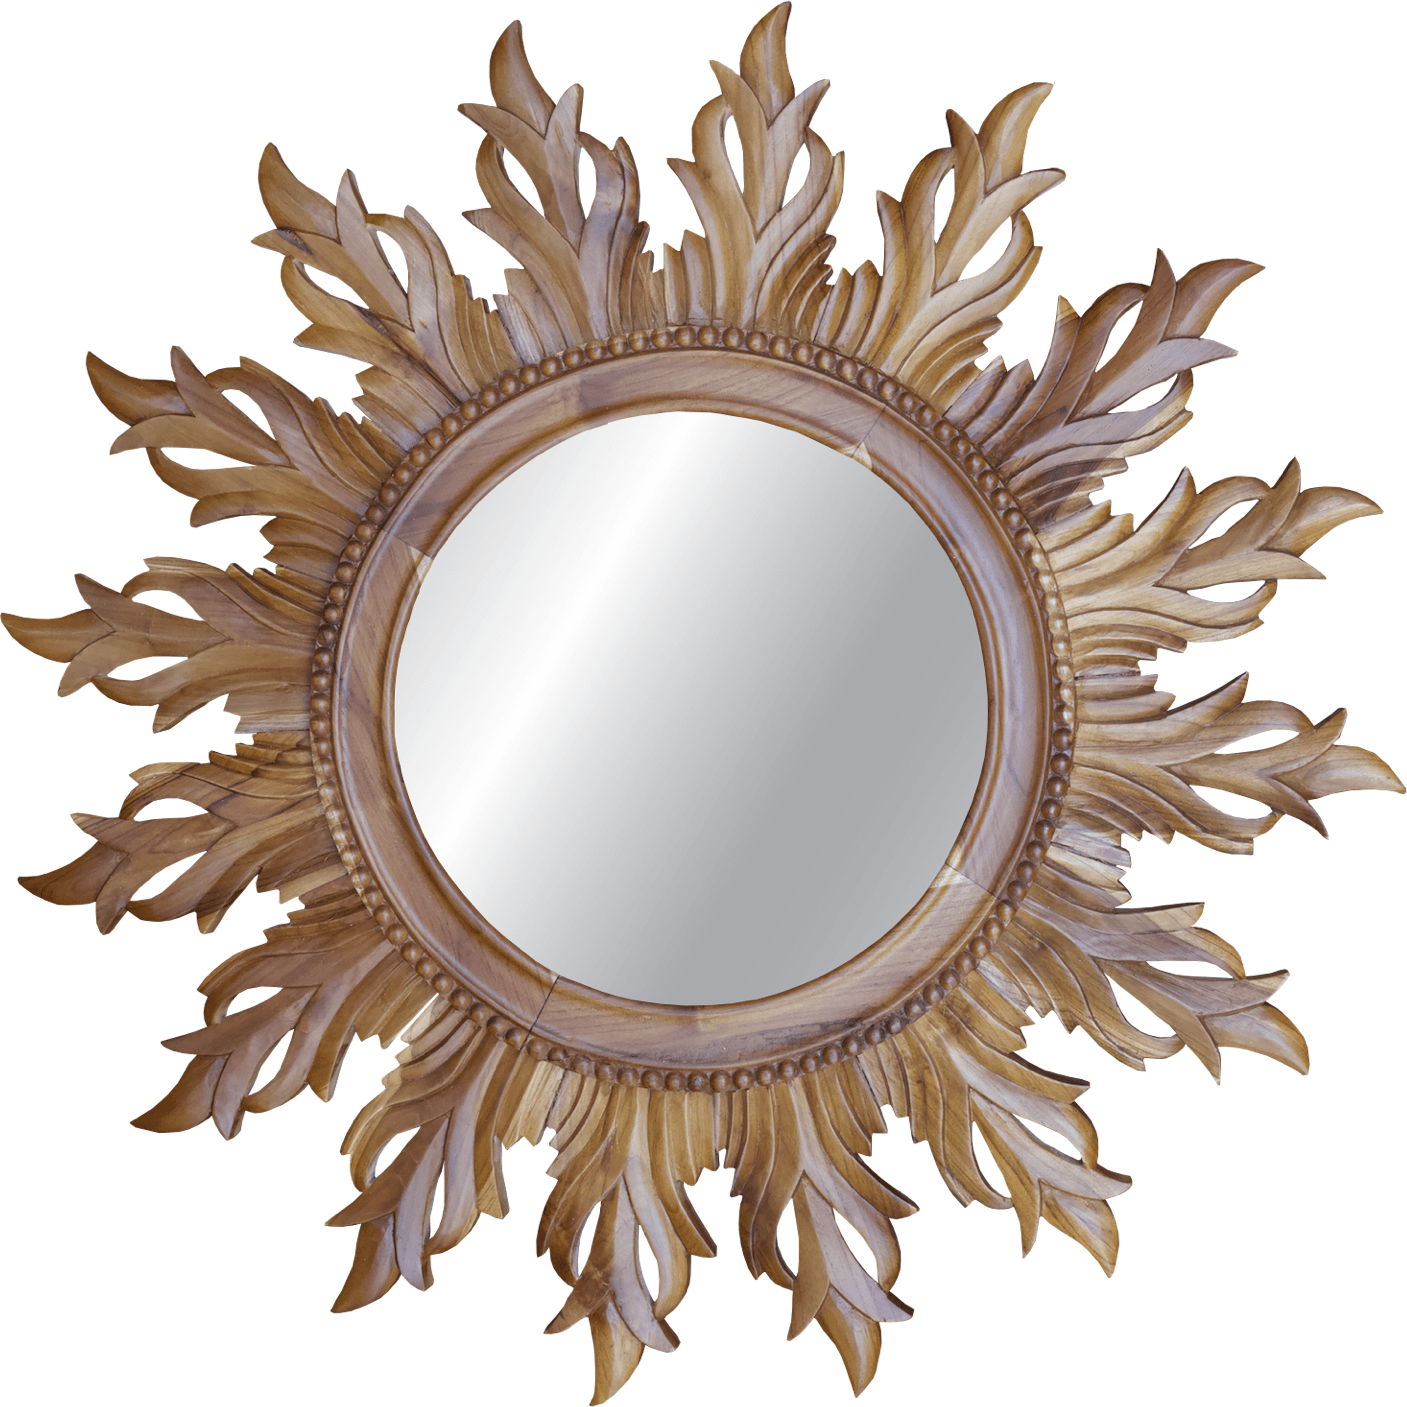 INTERNATIONAL Mirrors Mirror Corinthian